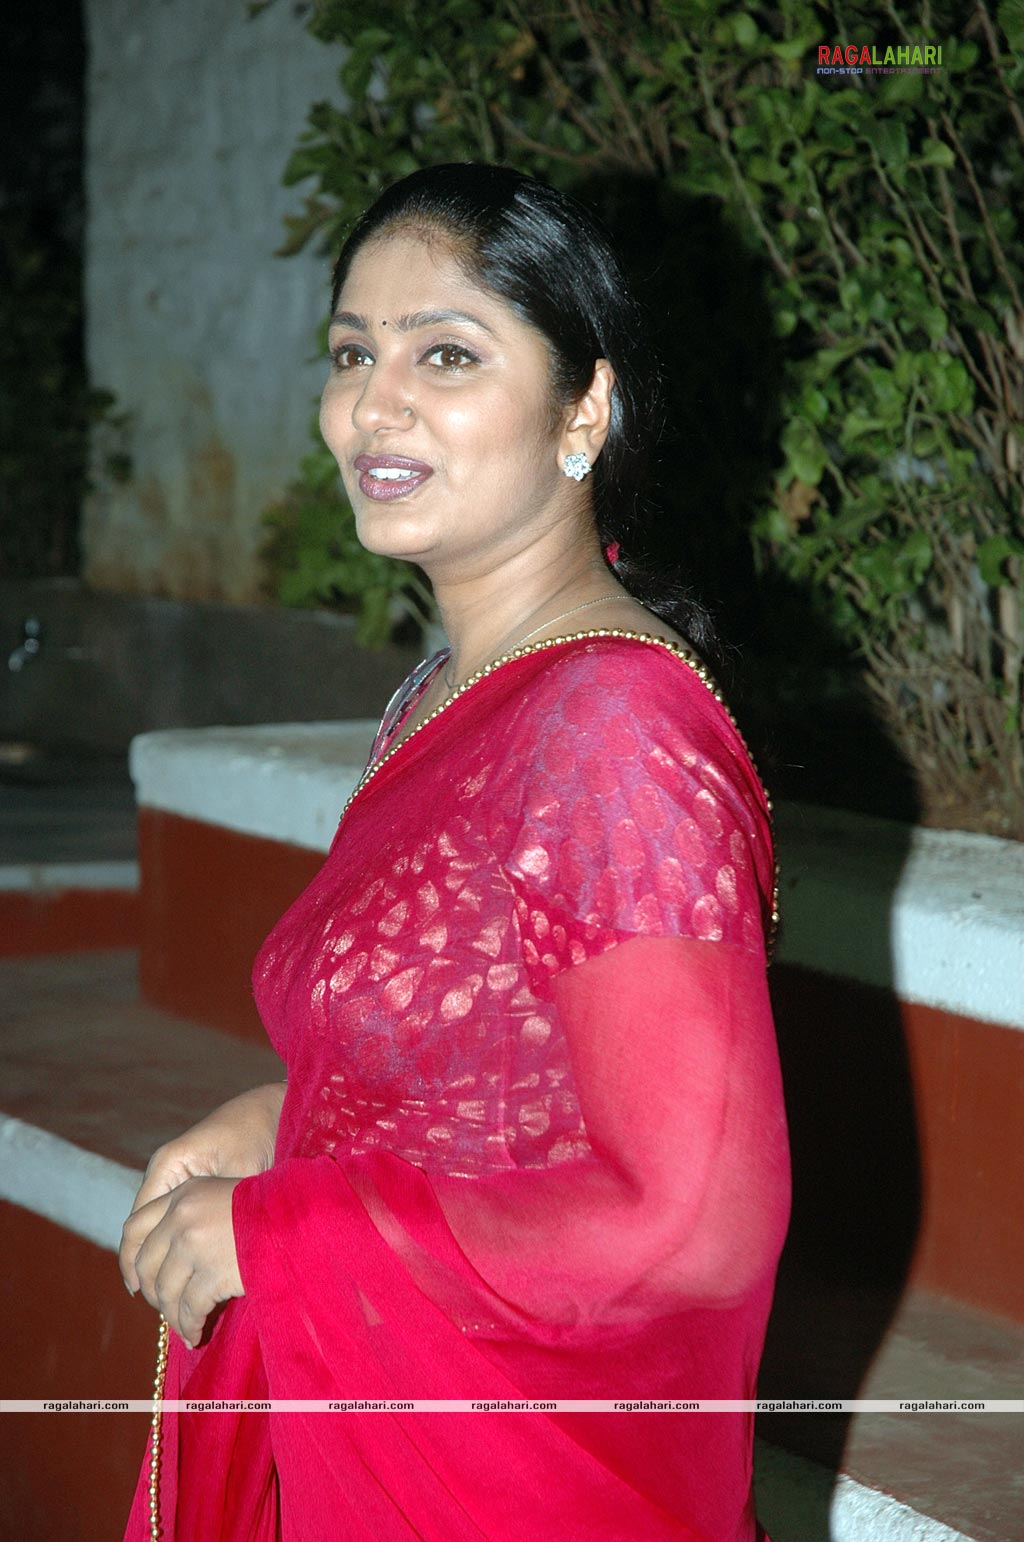 Anchor jhansi nude images-3285